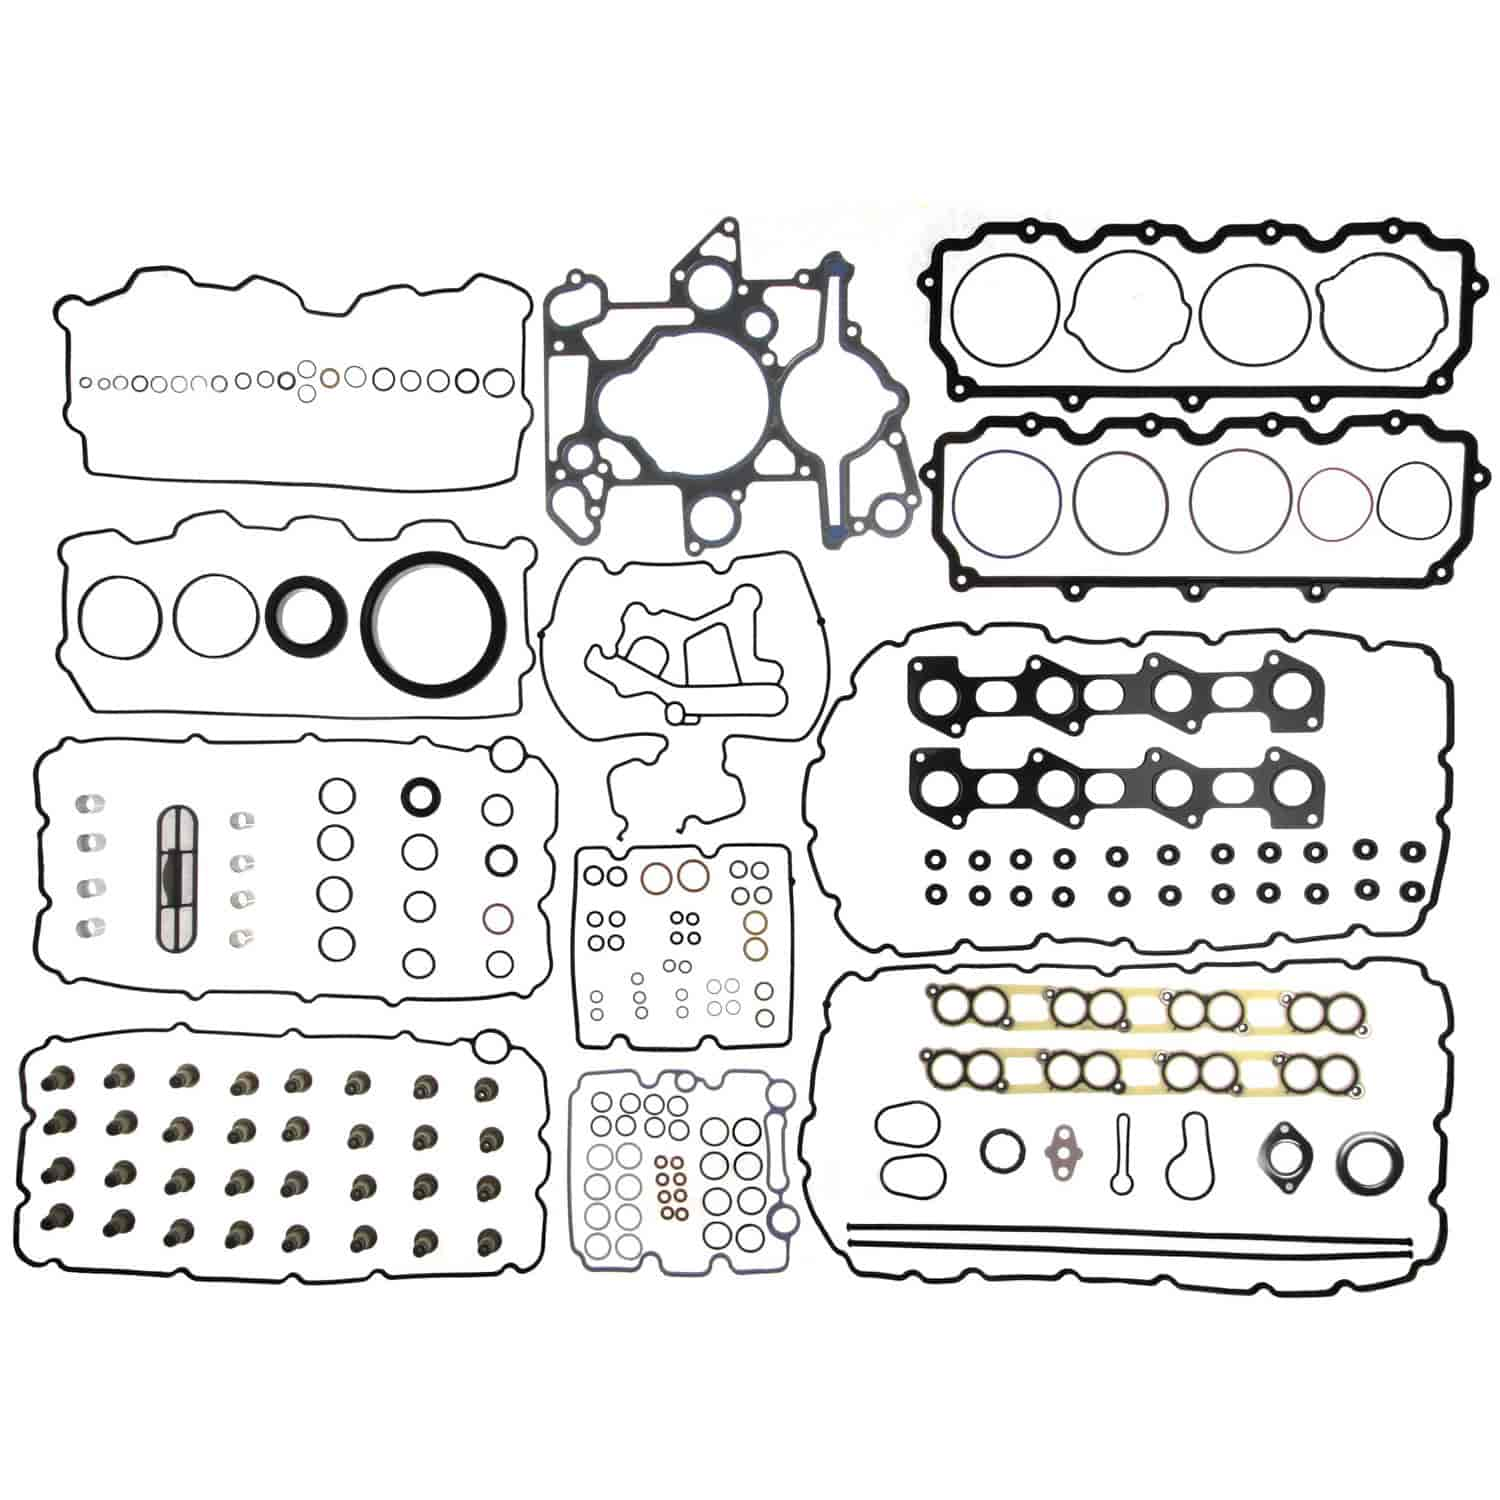 Clevite Mahle Engine Kit Gasket Set Ford